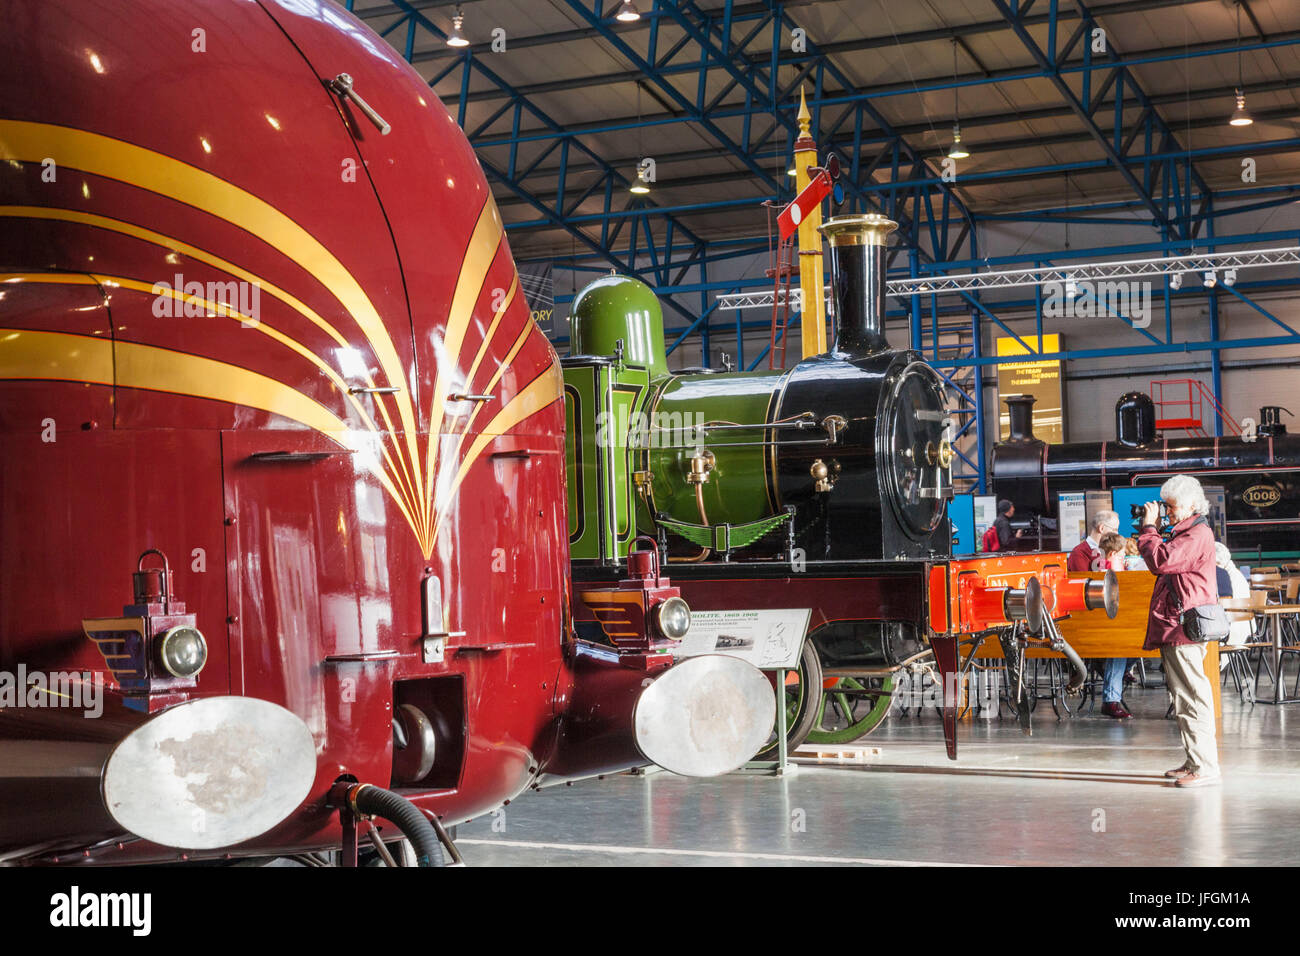 England, Yorkshire, York, National Railway Museum, Exhibit of Historical Trains - Stock Image